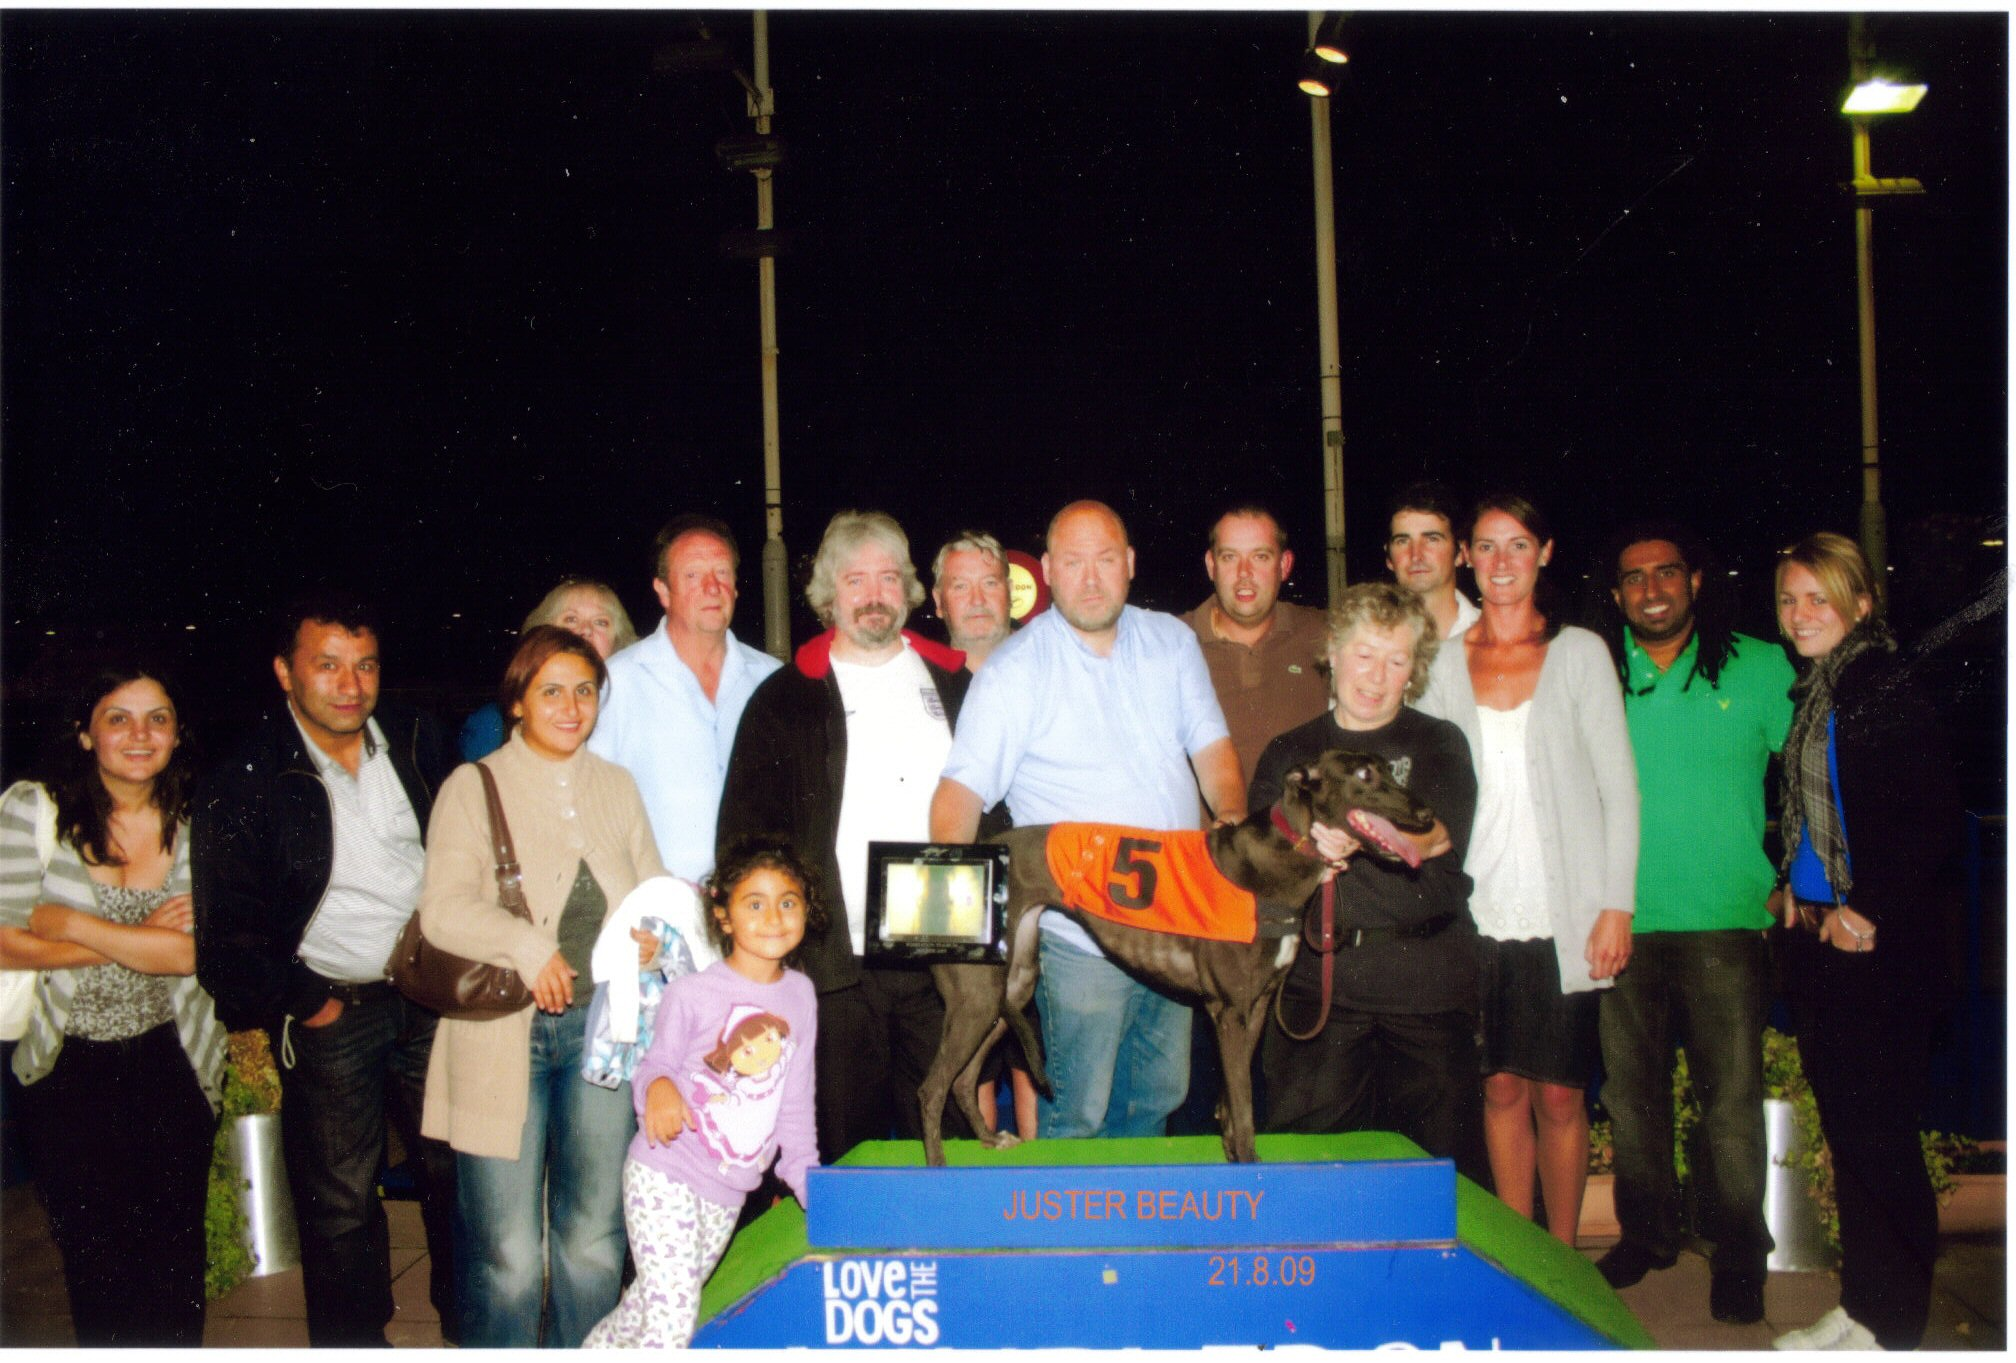 Juster Beauty's Trophy winning photo 21/08/09